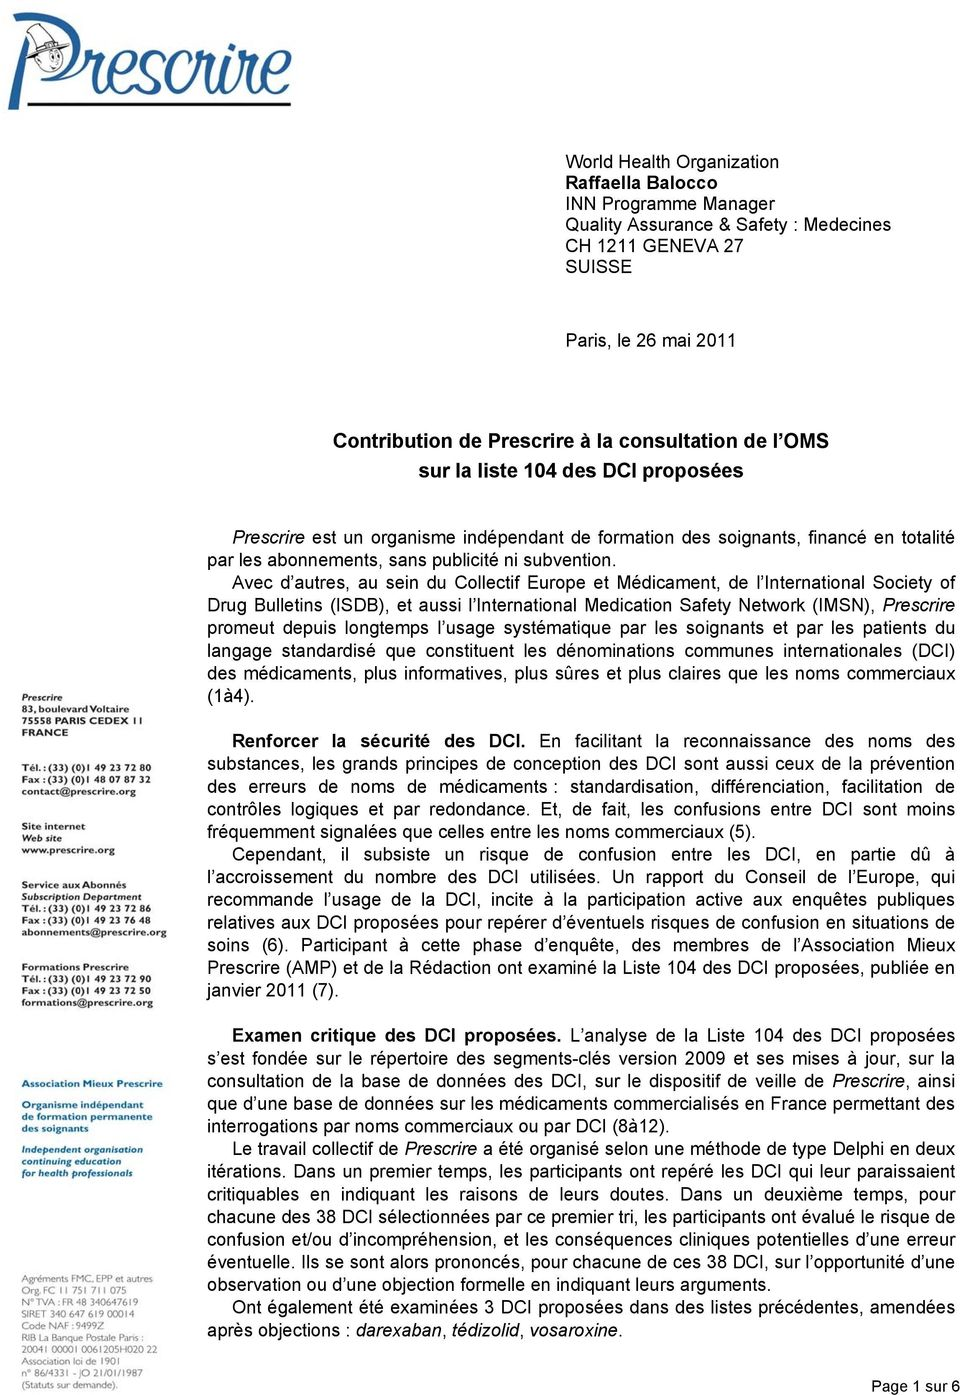 Avec d autres, au sein du Collectif Europe et Médicament, de l International Society of Drug Bulletins (ISDB), et aussi l International Medication Safety Network (IMSN), Prescrire promeut depuis